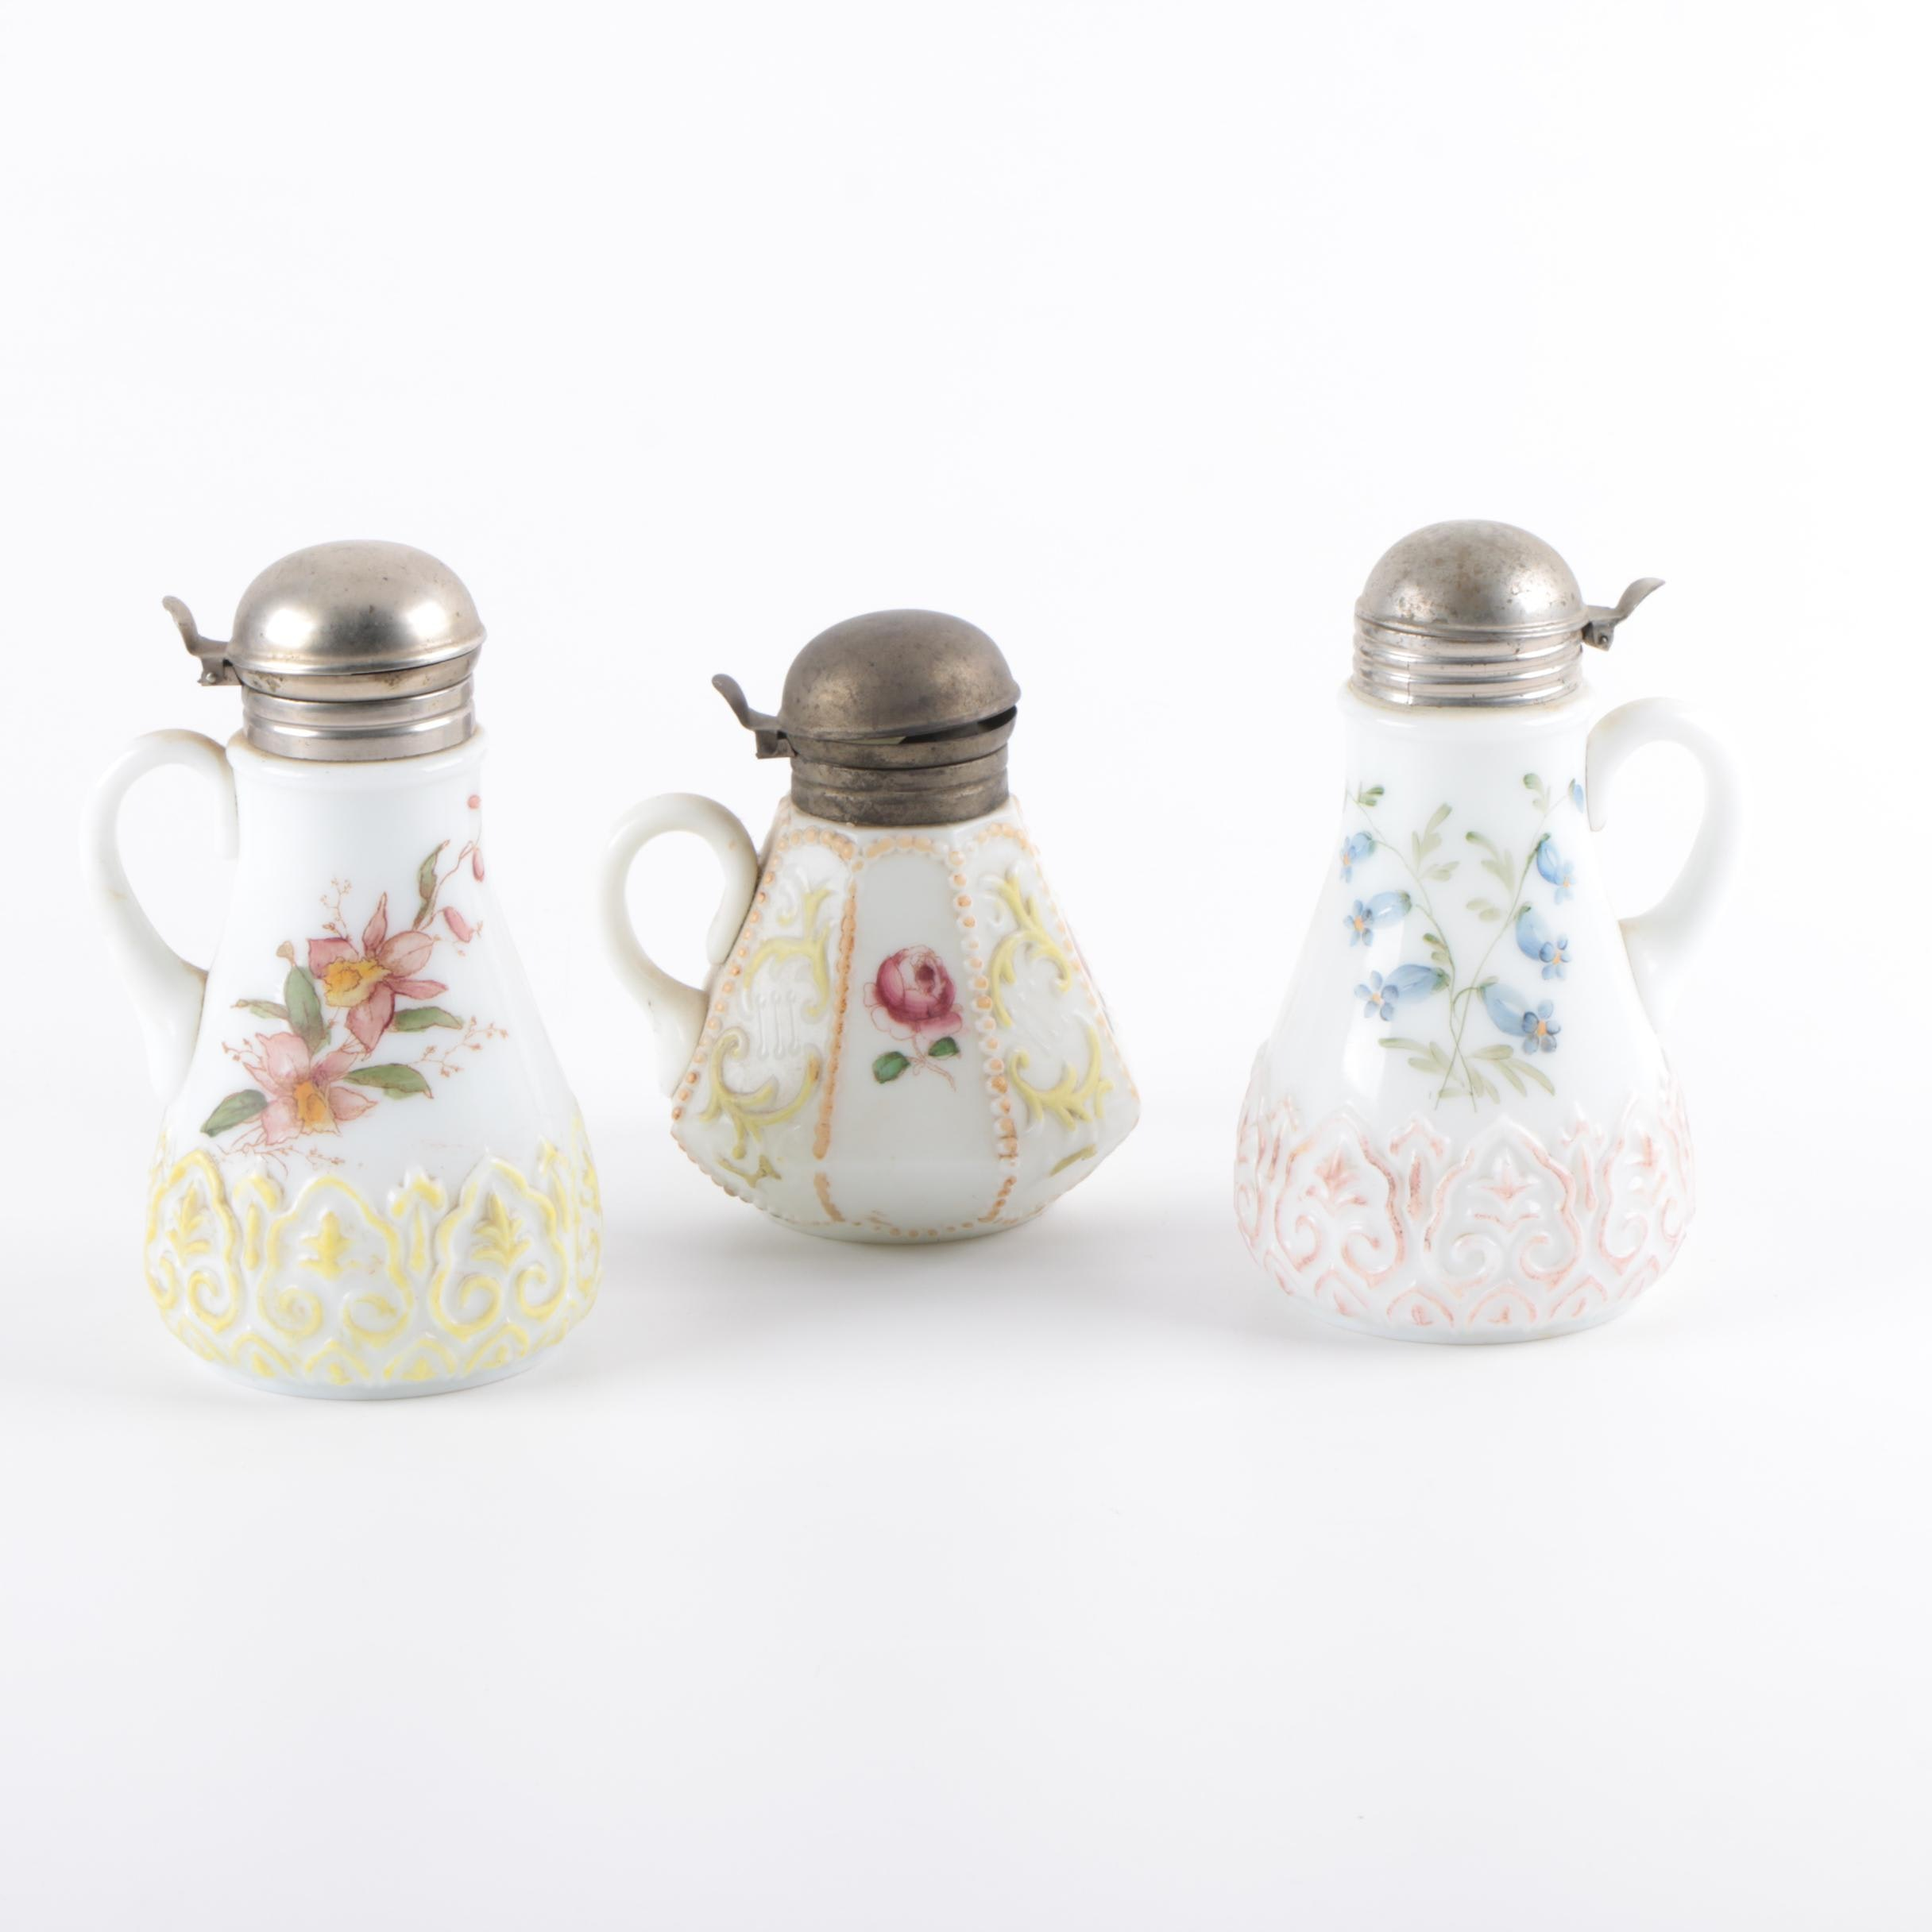 Three Antique Hand Painted Milk Glass Syrup Pitchers